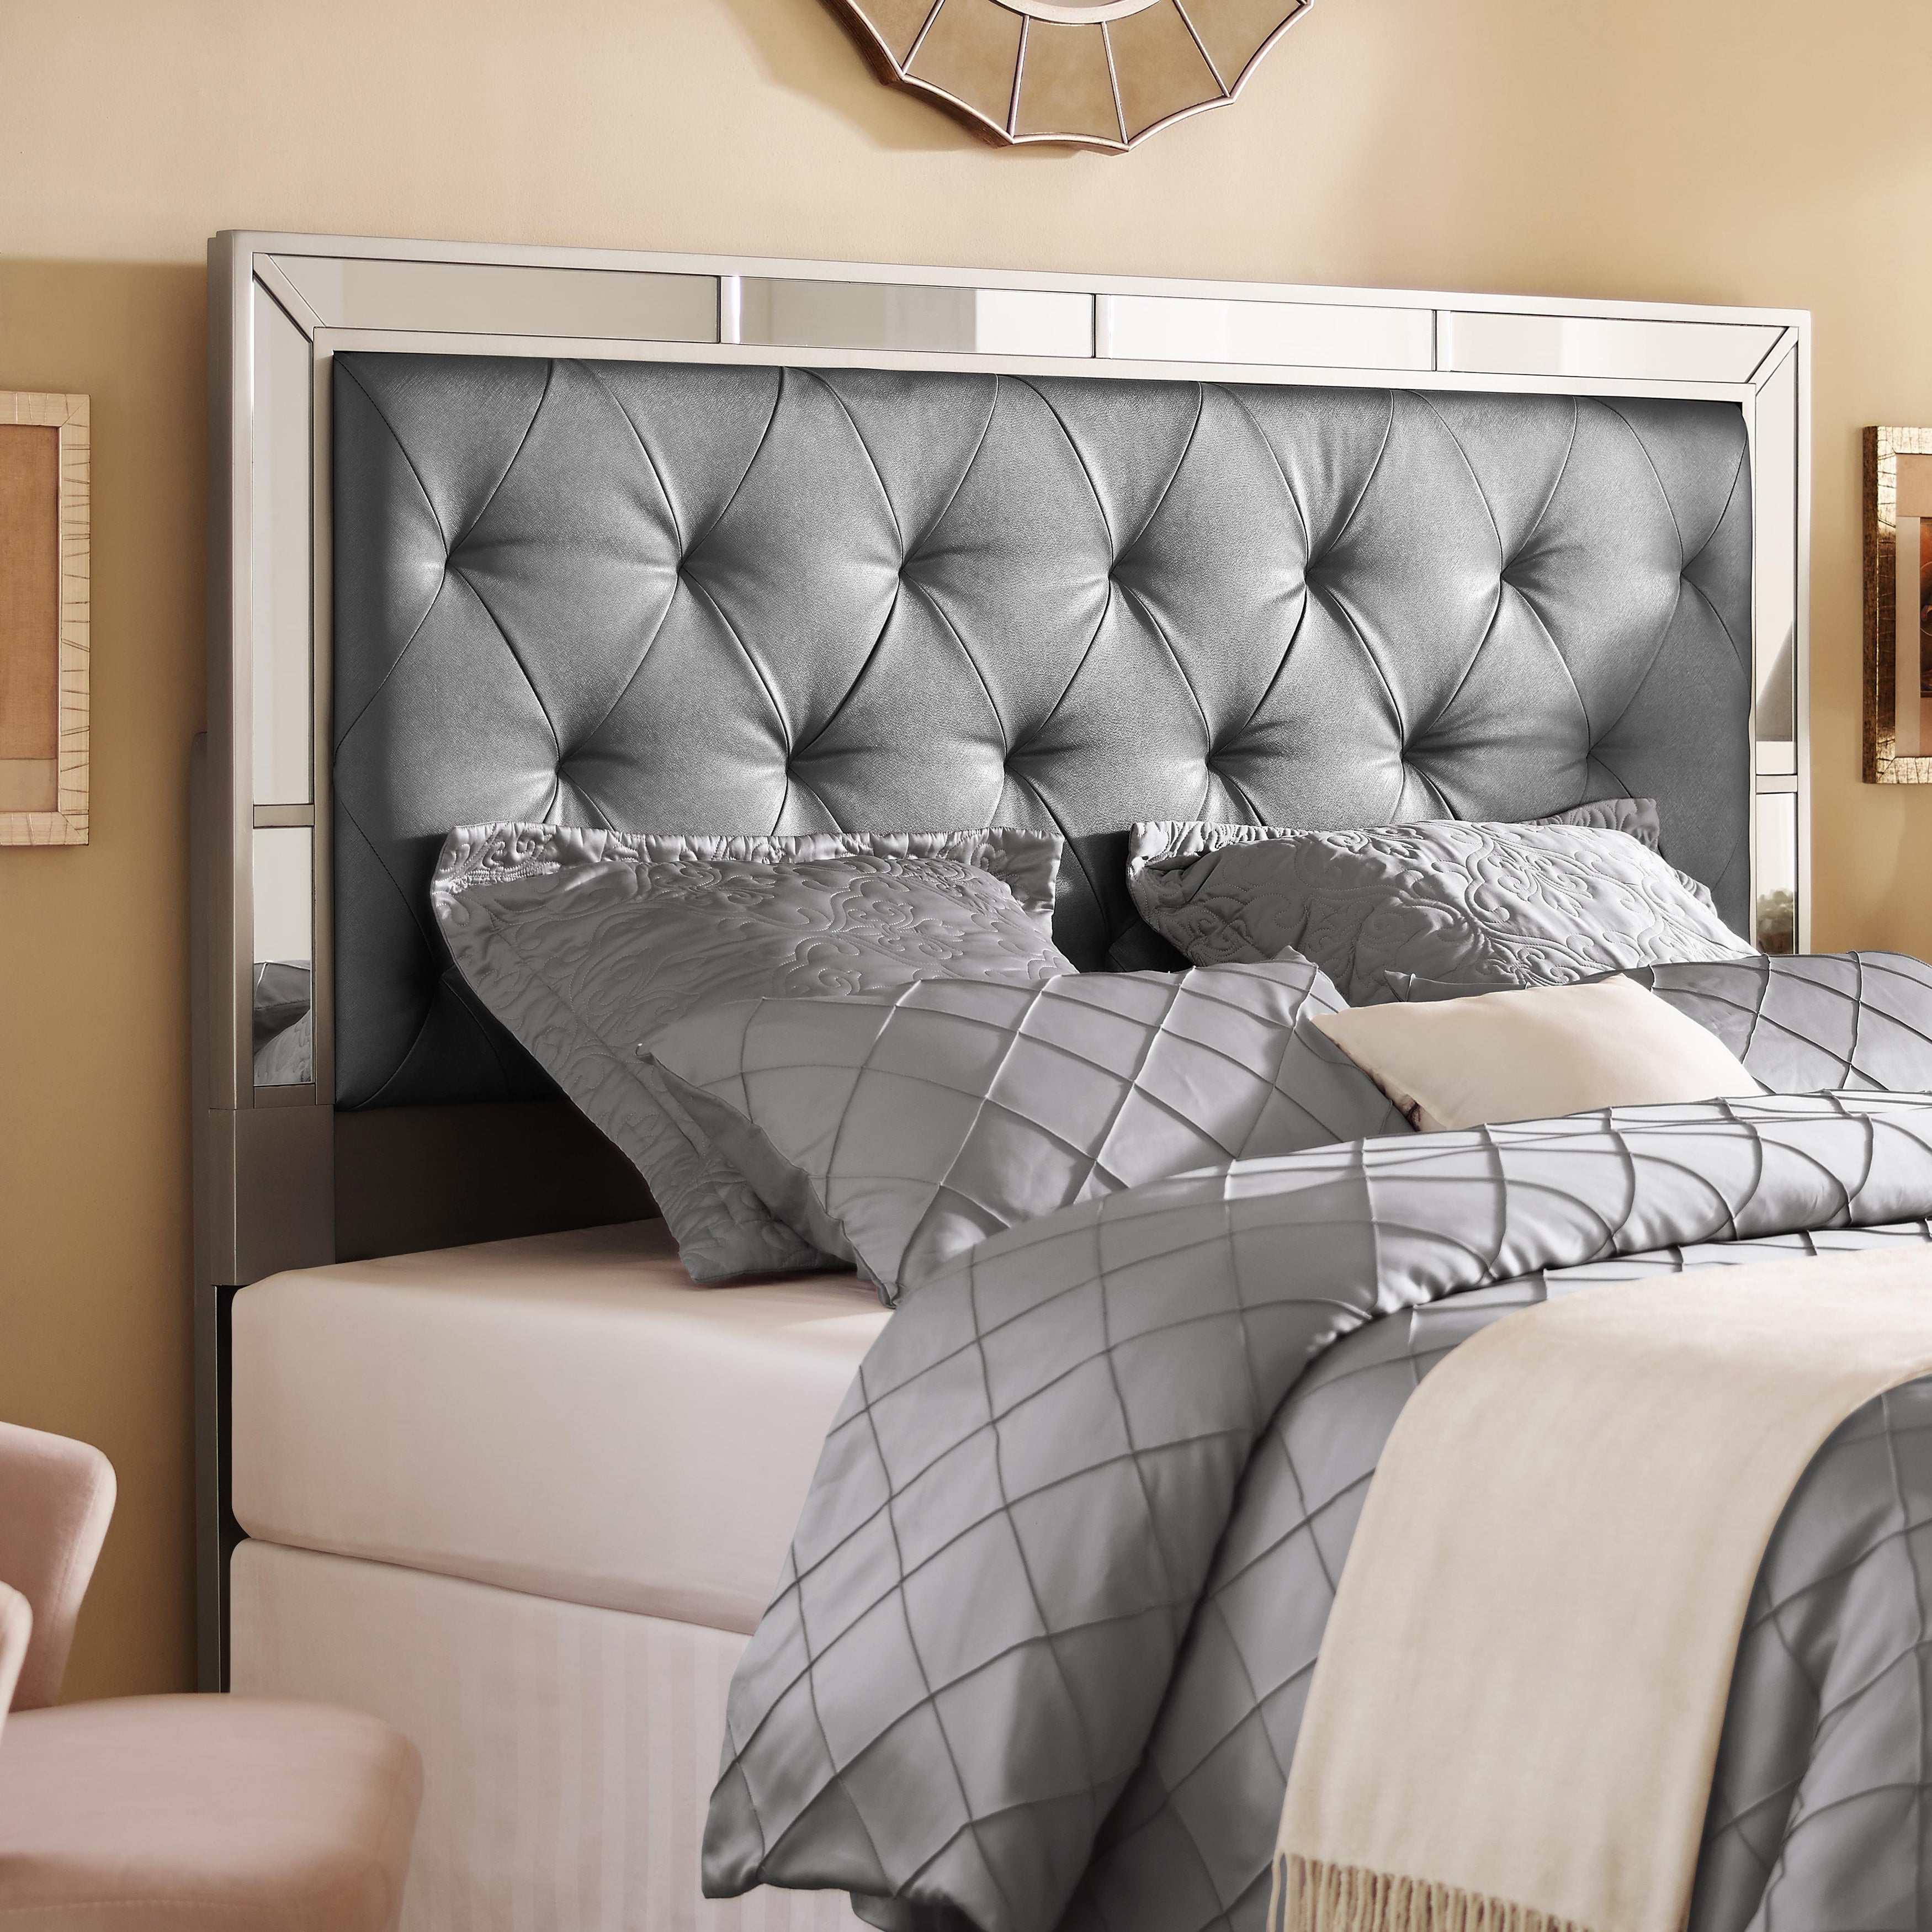 Shop Silver King California King Size Upholstered Tufted Mirrored